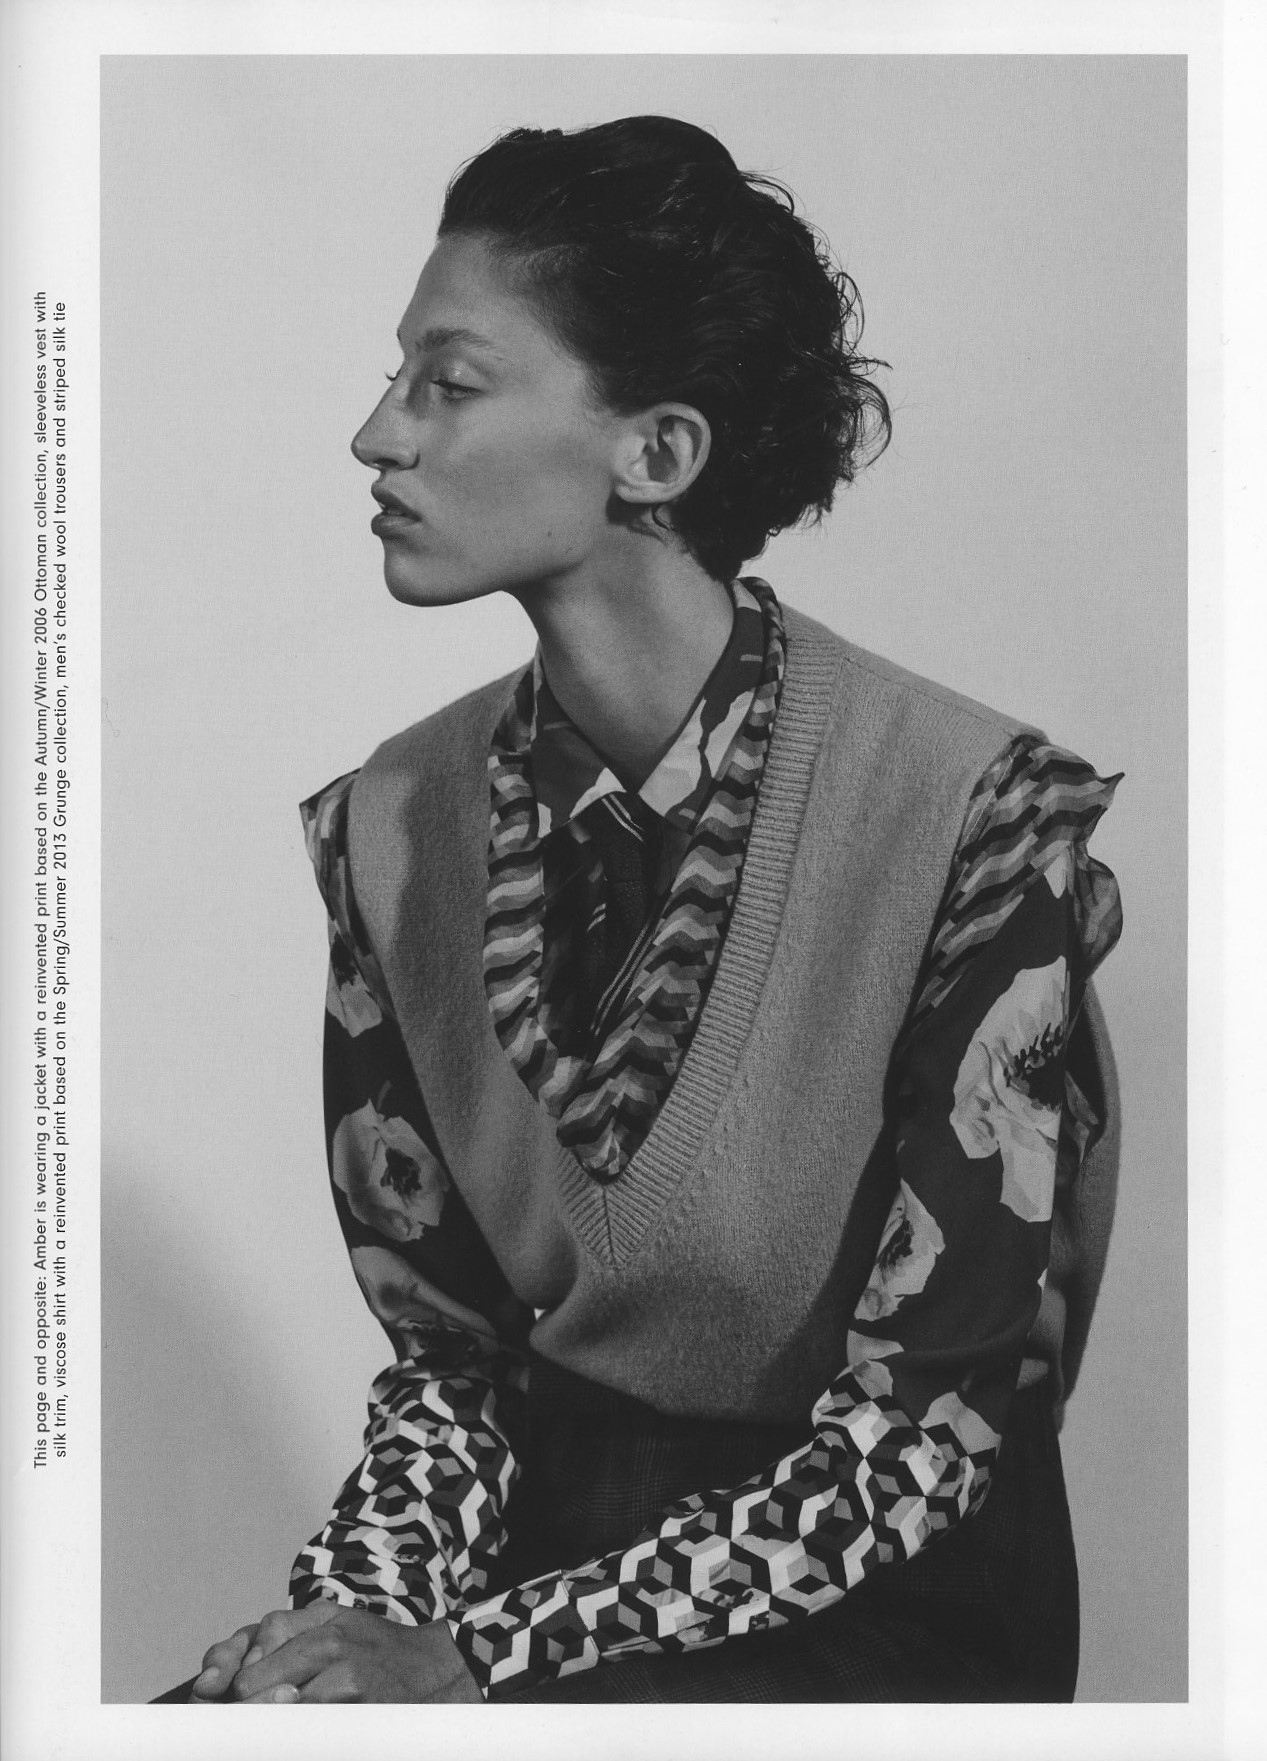 dries van noten photography collier schorr styling katie shillingford another magazine vol 2 issue 6 aw 2017 15